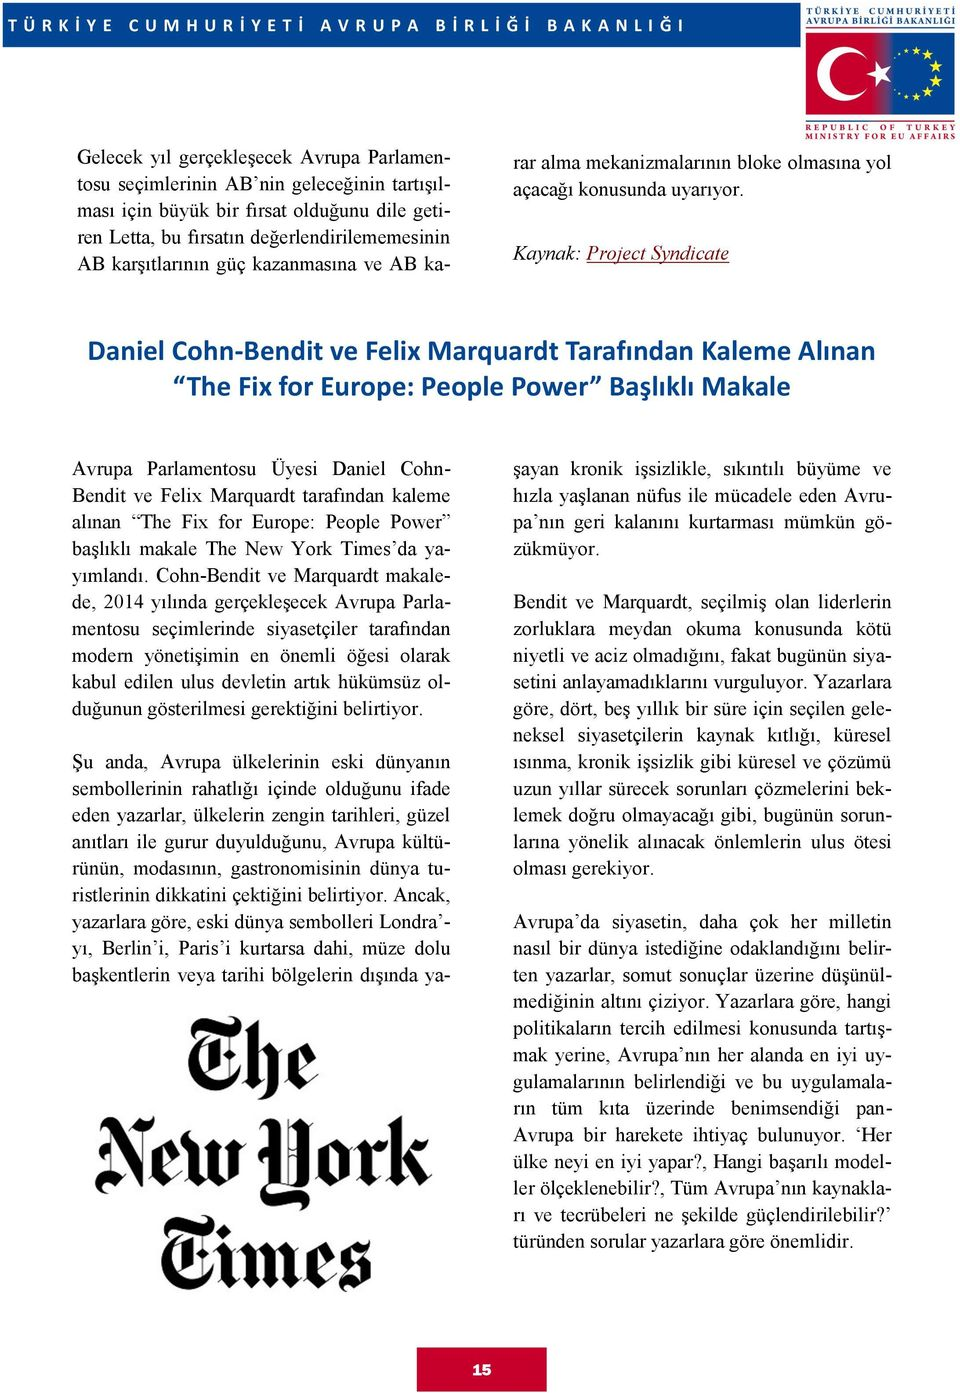 Kaynak: Project Syndicate Daniel Cohn-Bendit ve Felix Marquardt Tarafından Kaleme Alınan The Fix for Europe: People Power Başlıklı Makale Avrupa Parlamentosu Üyesi Daniel Cohn- Bendit ve Felix